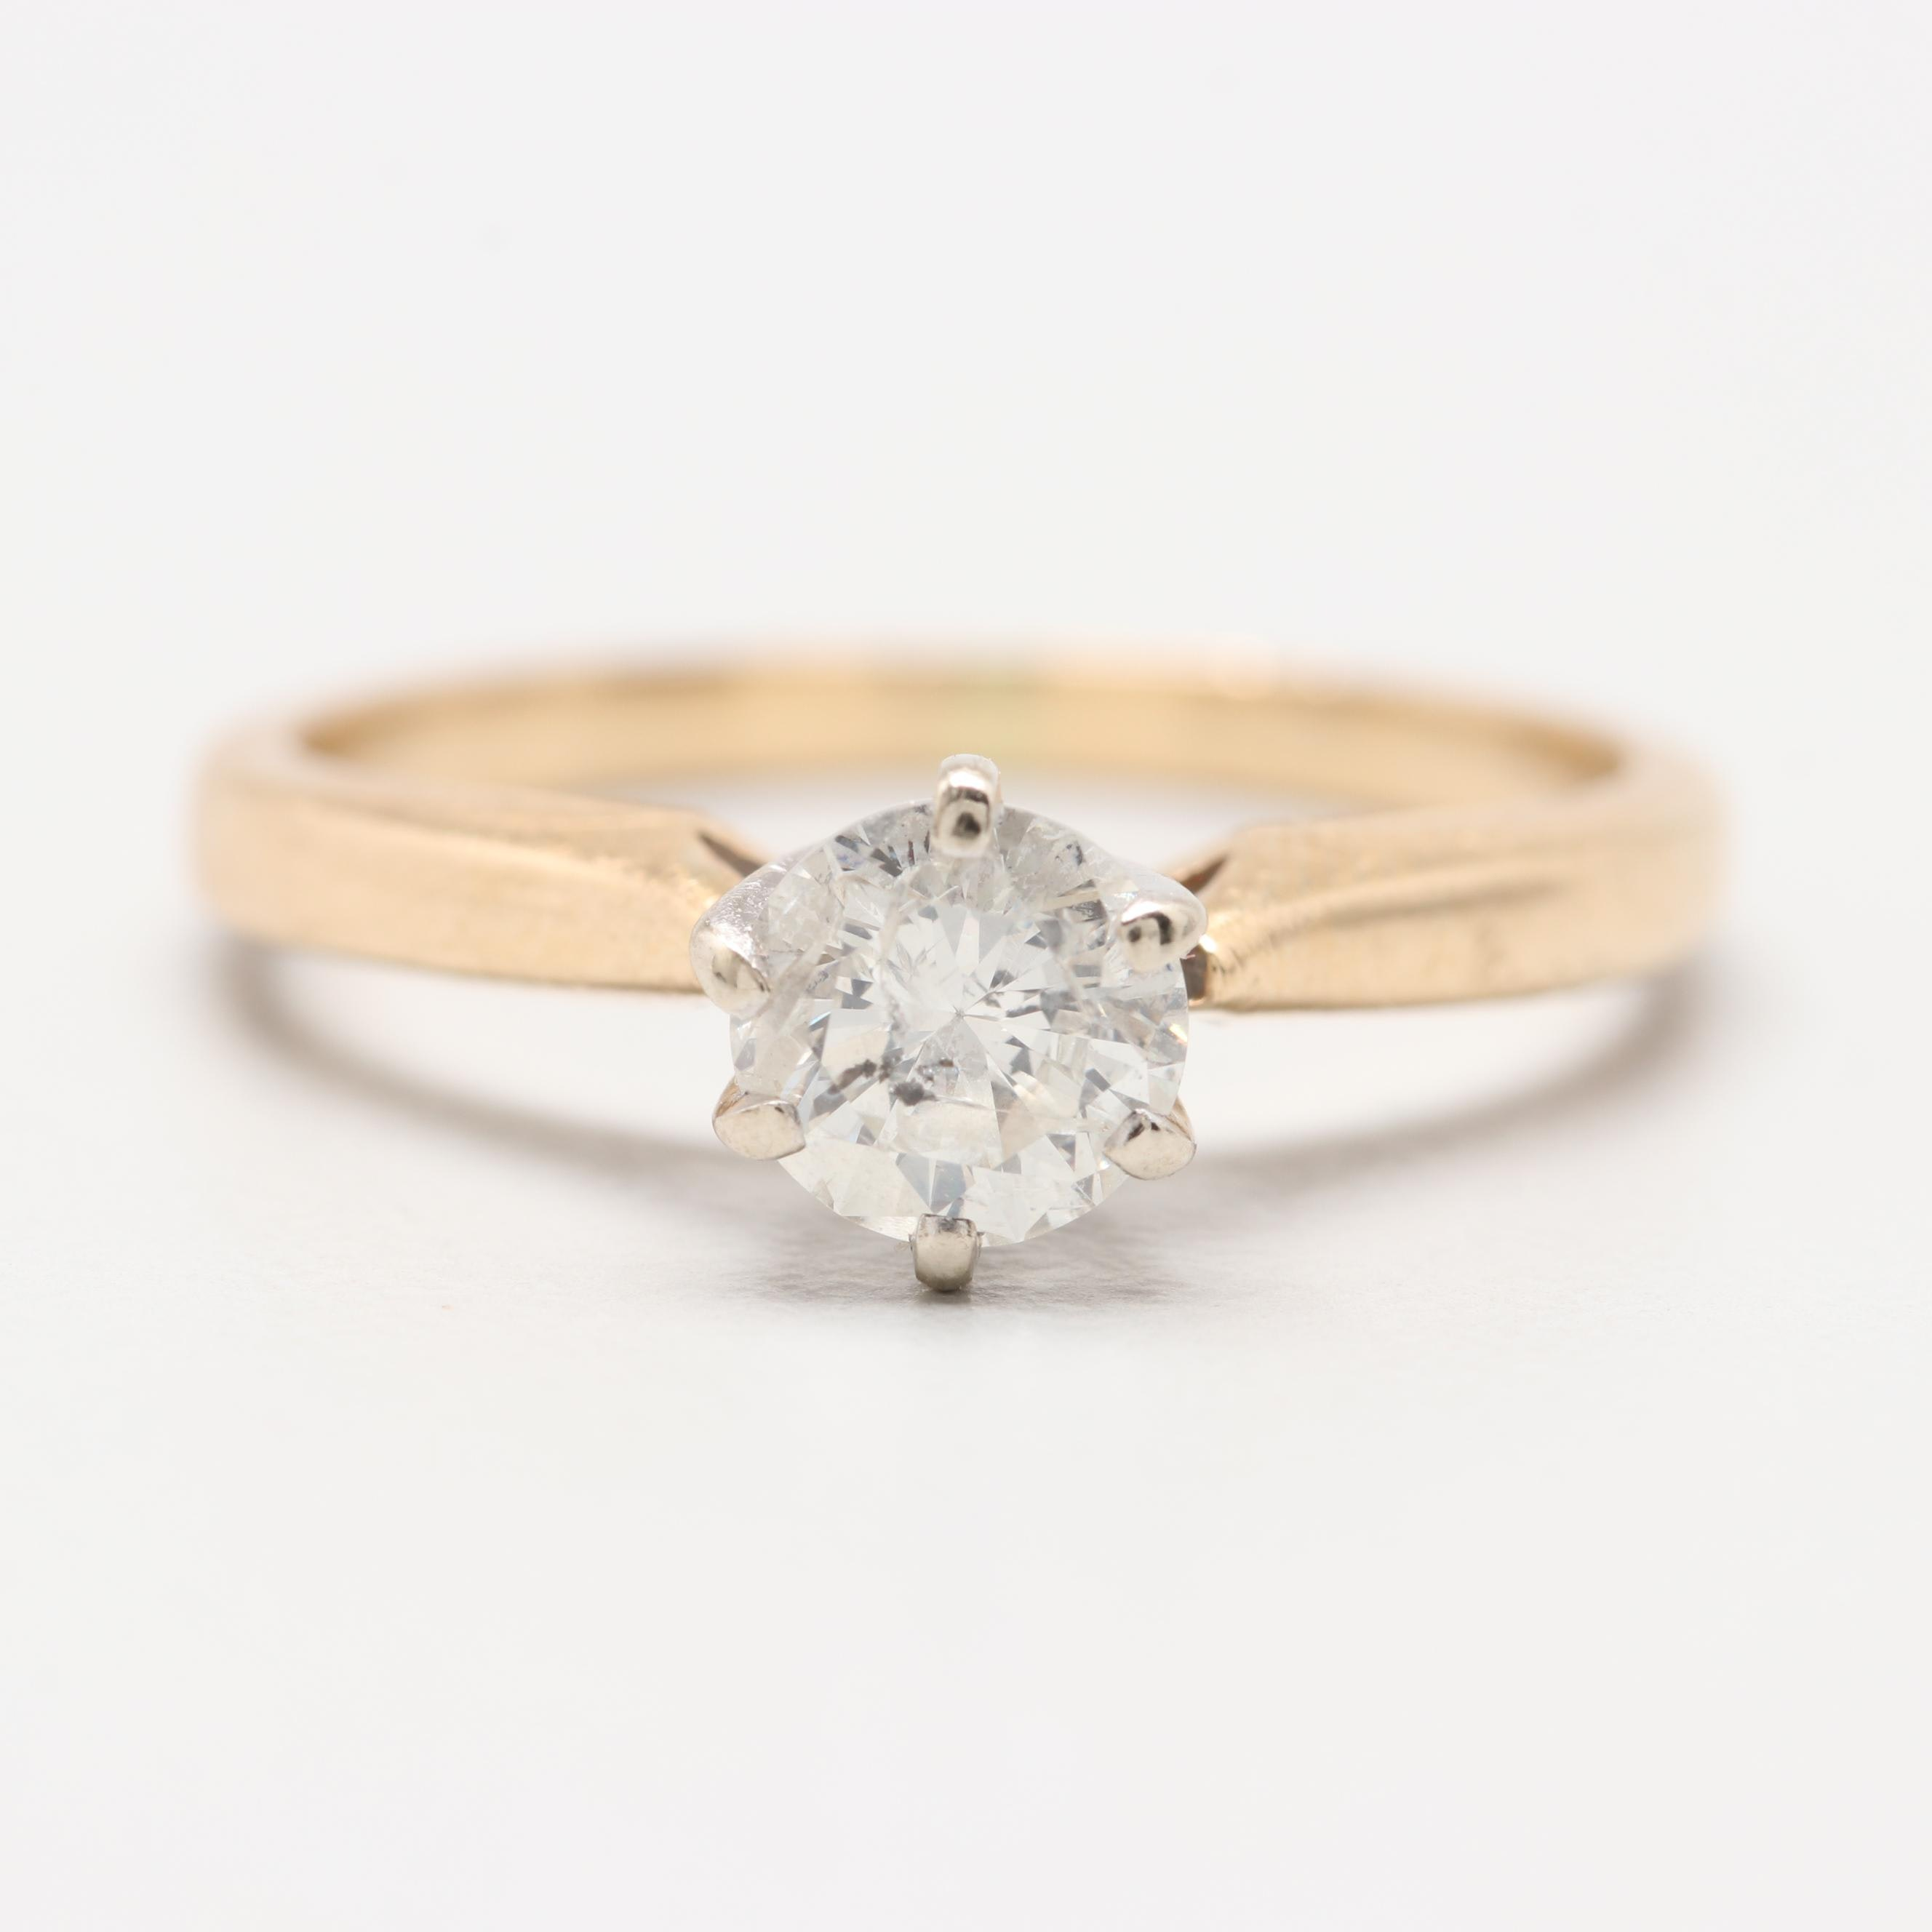 14K Yellow Gold and 10K White Gold Diamond Ring